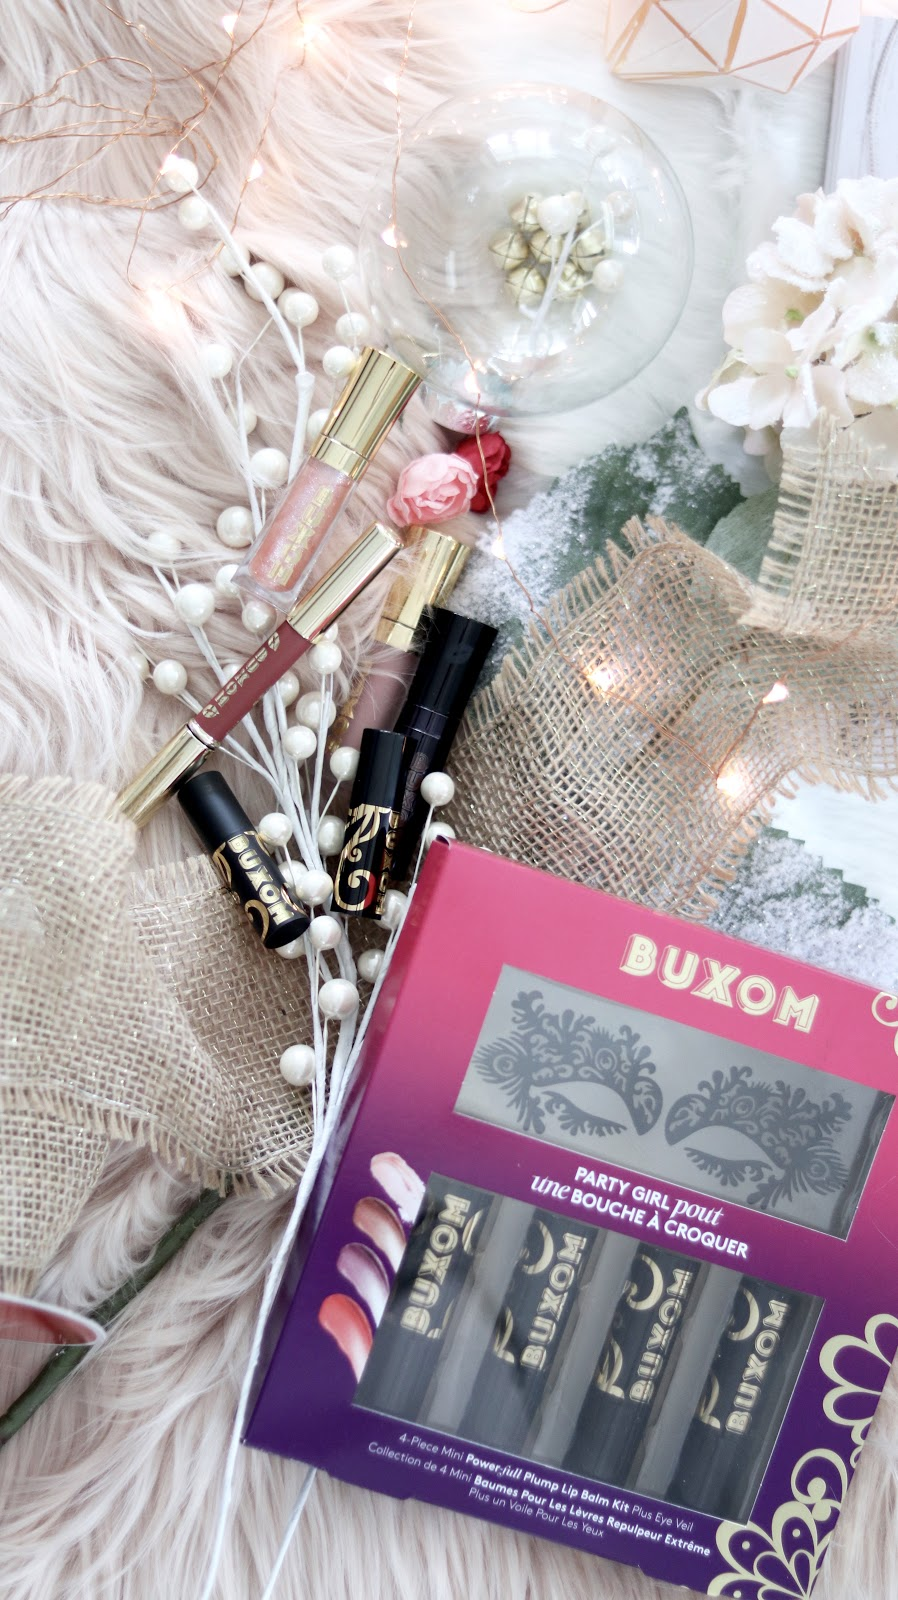 Buxom Cosmetics holiday gift sets 2018 for the beauty lover